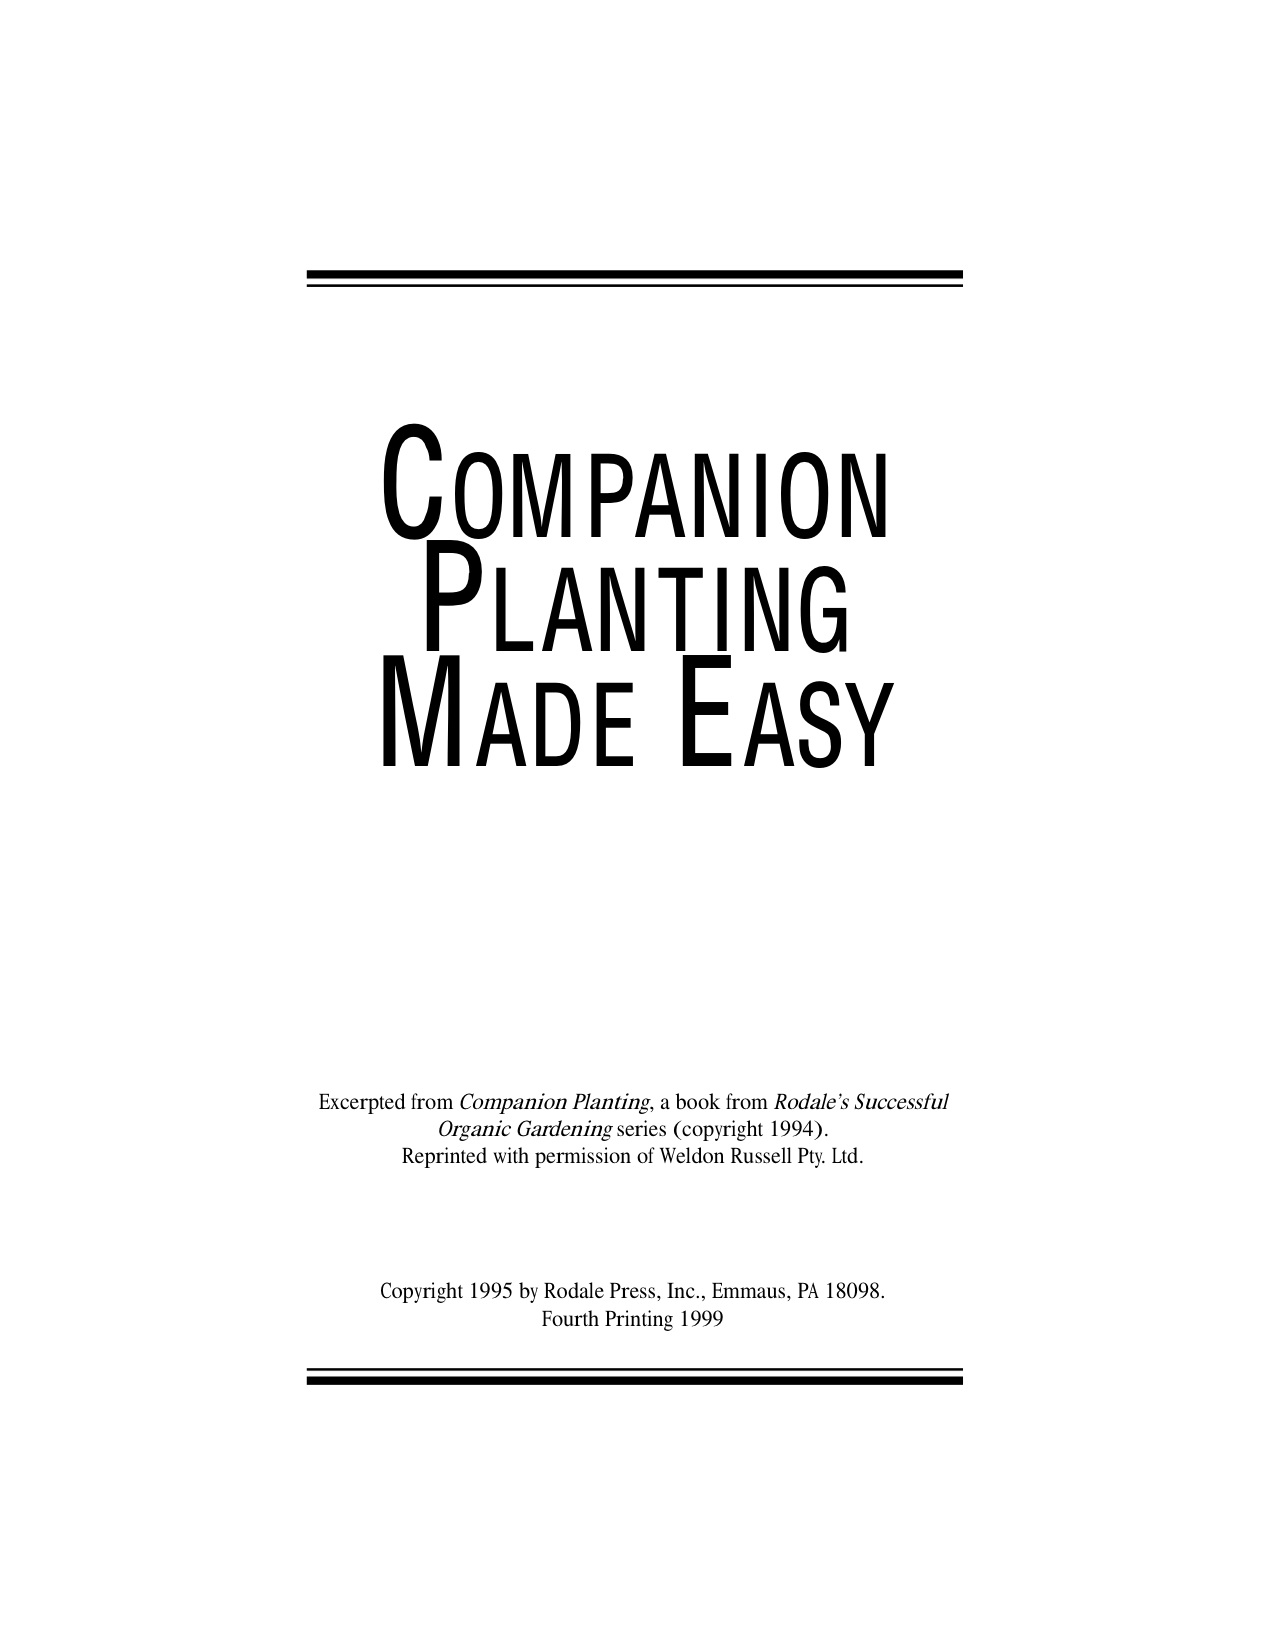 Interplanting (Companion Planting) for Pest Control and